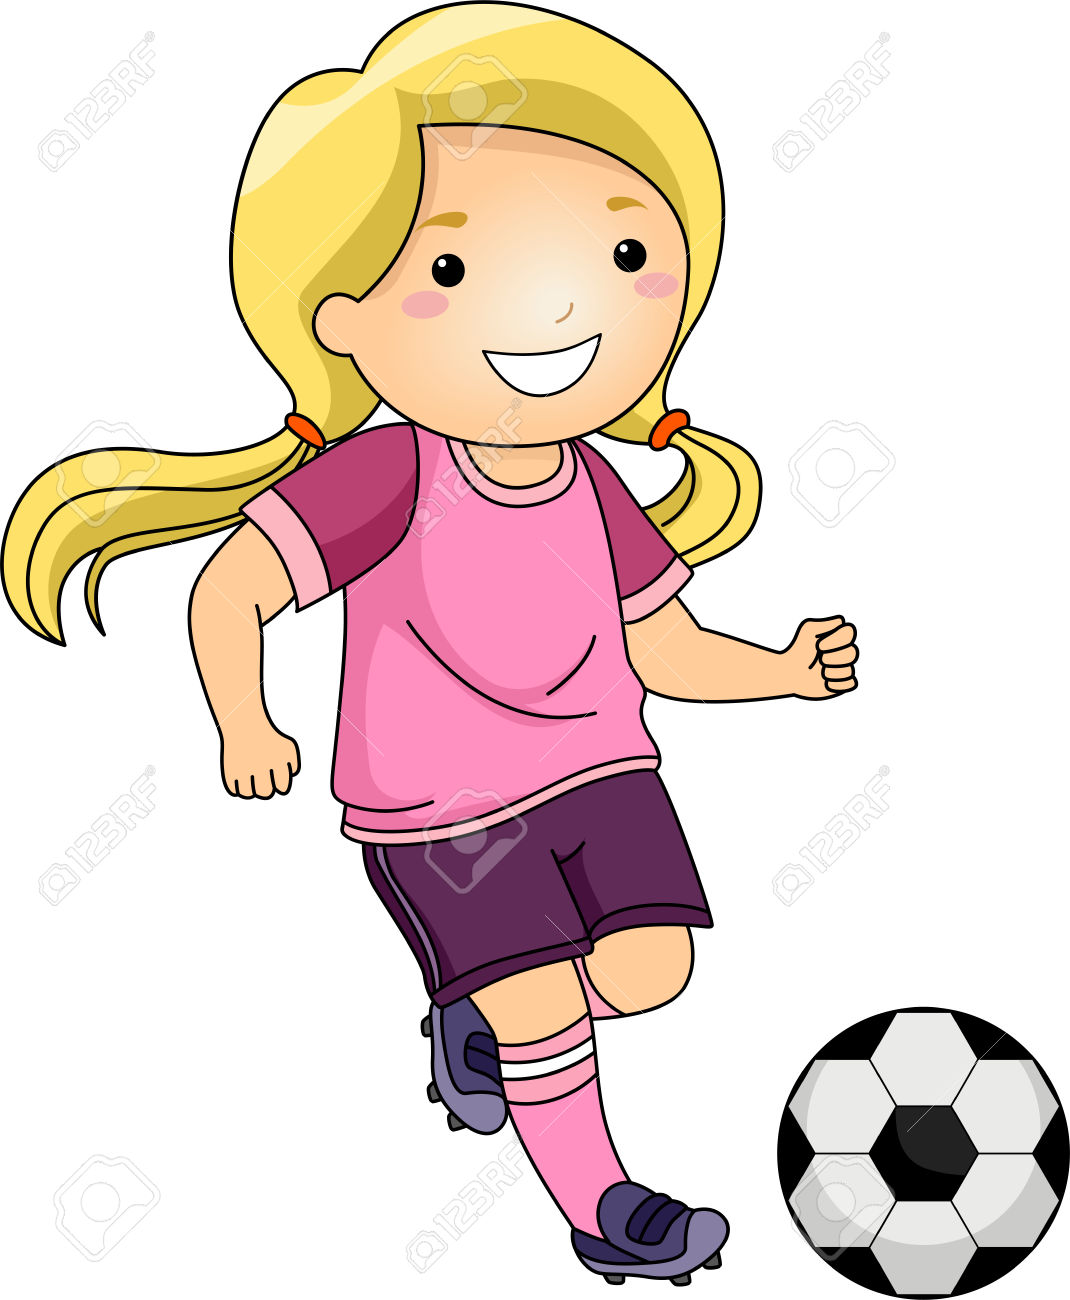 little girl playing soccer clipart clipground clip art kitchen tools clip art kitten pictures